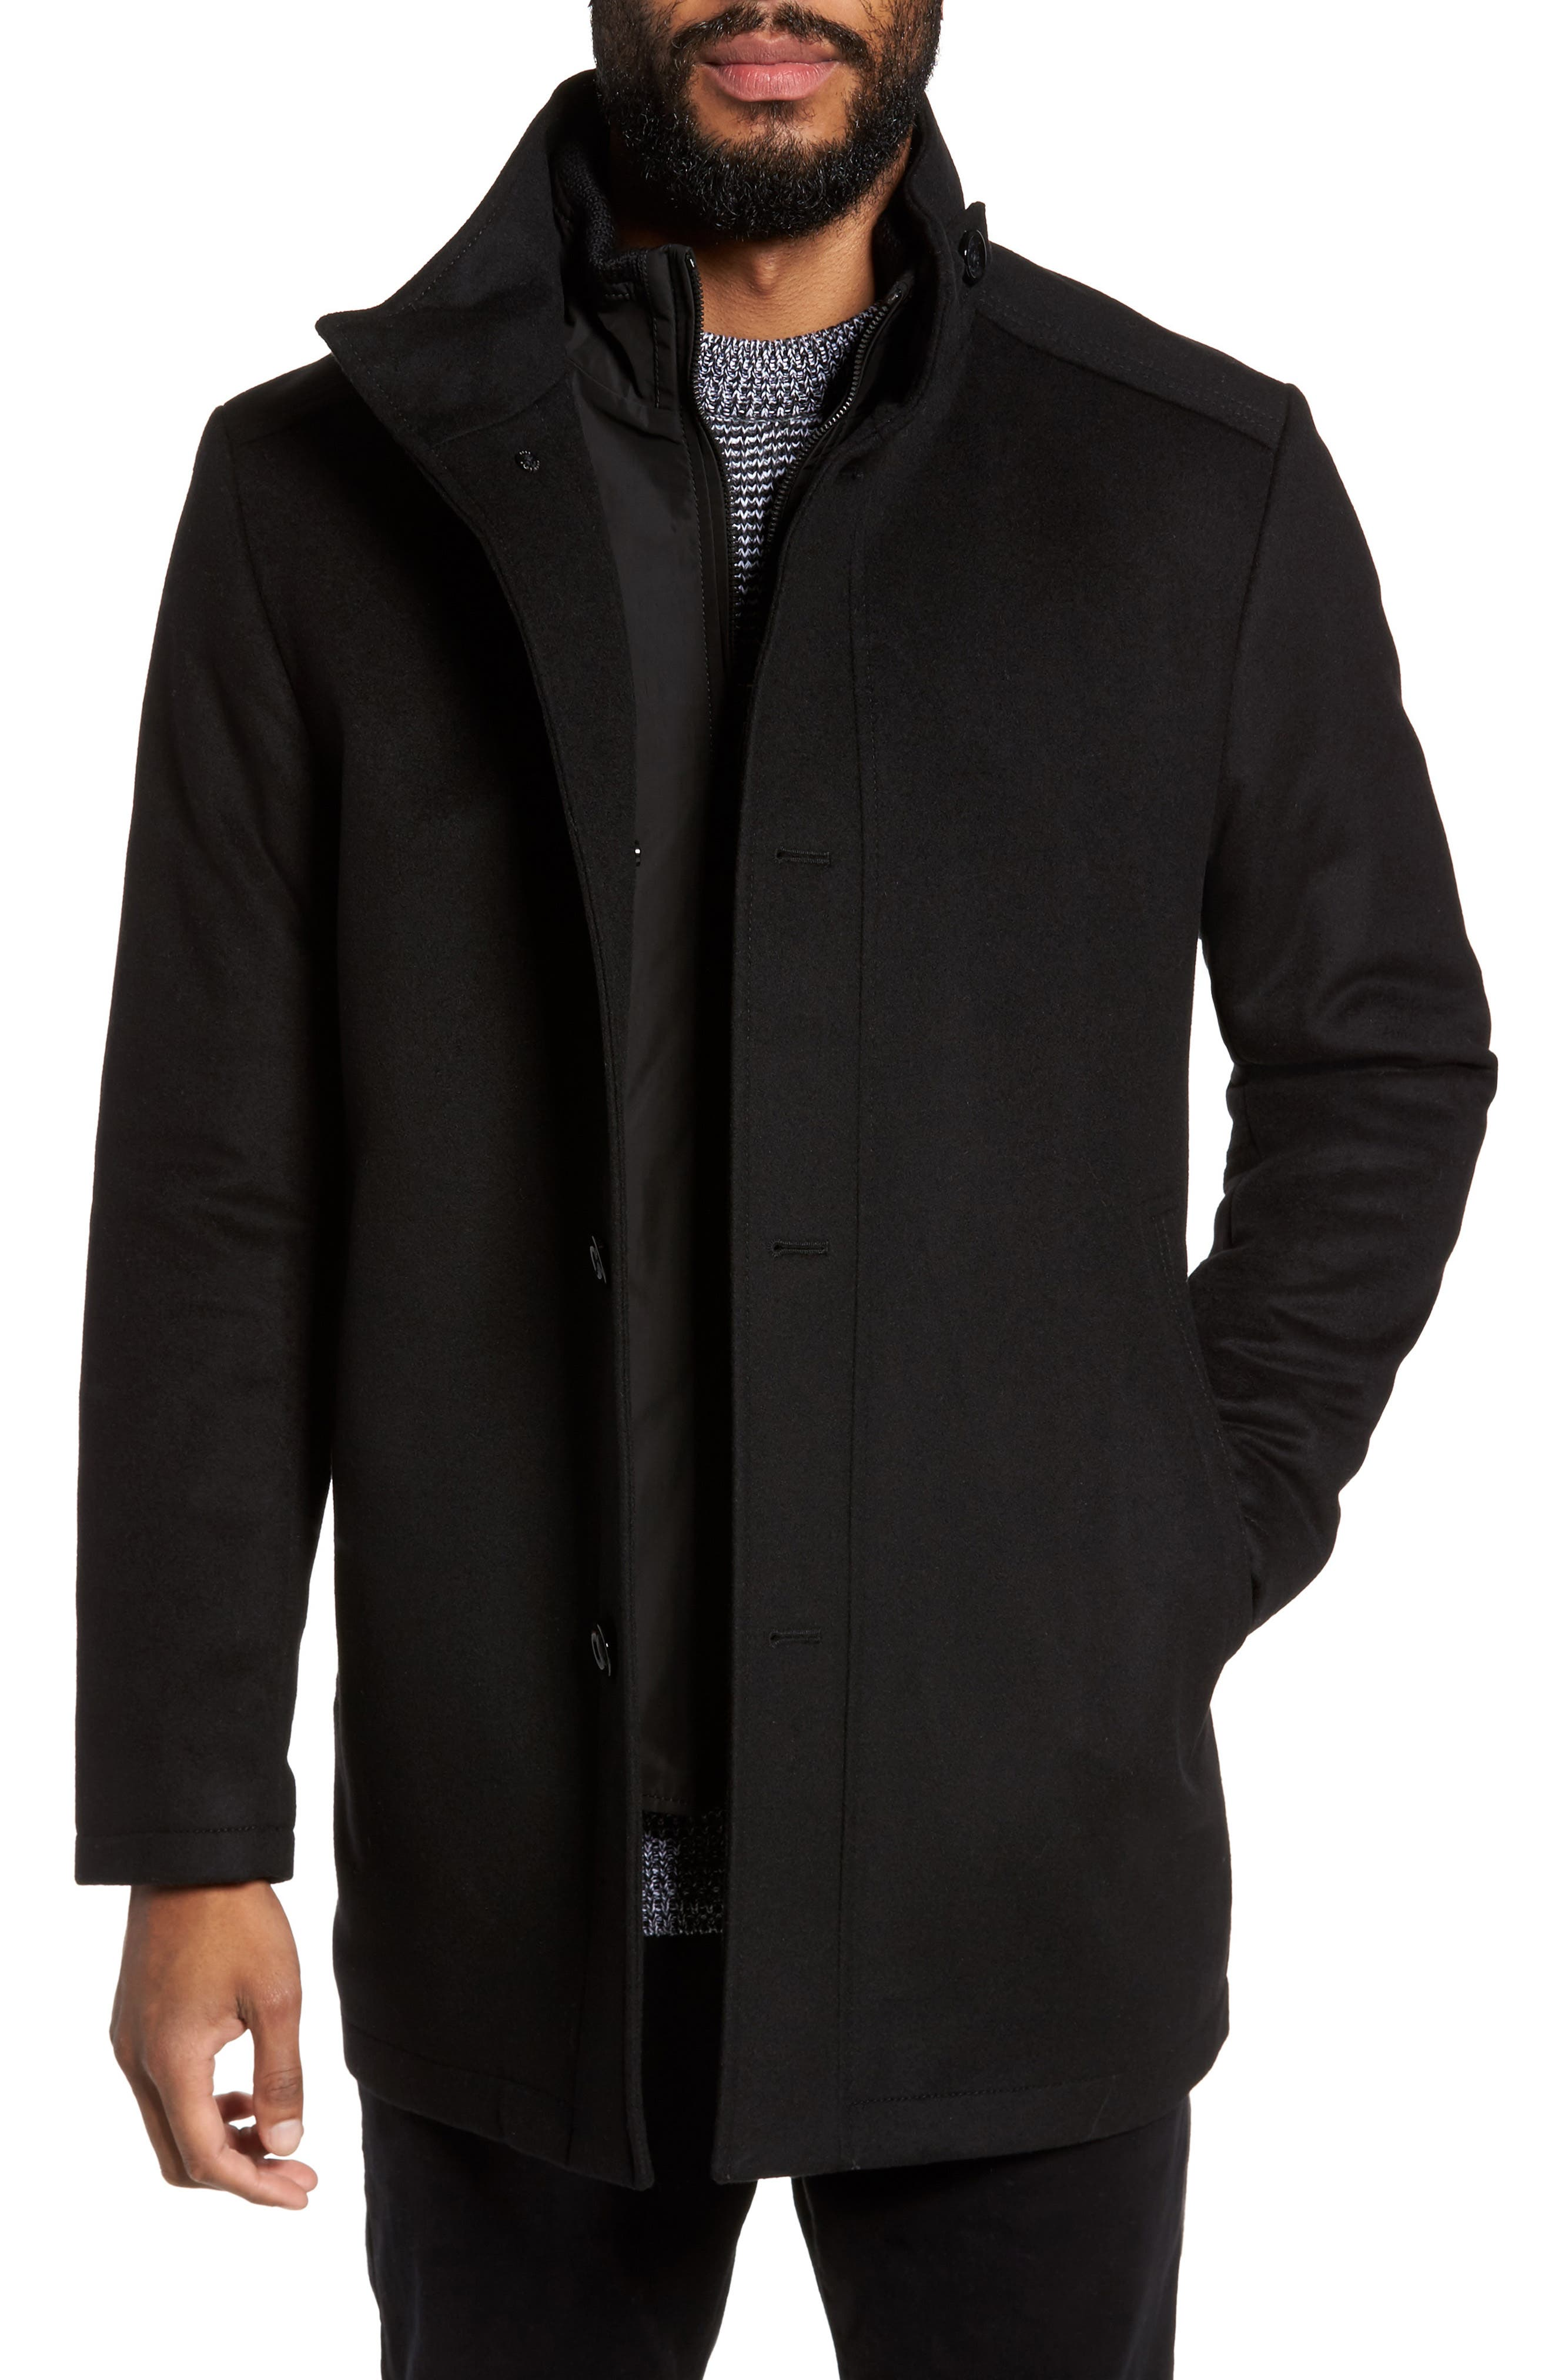 C-Coxtan Wool Blend Coat with Insert,                         Main,                         color, Black